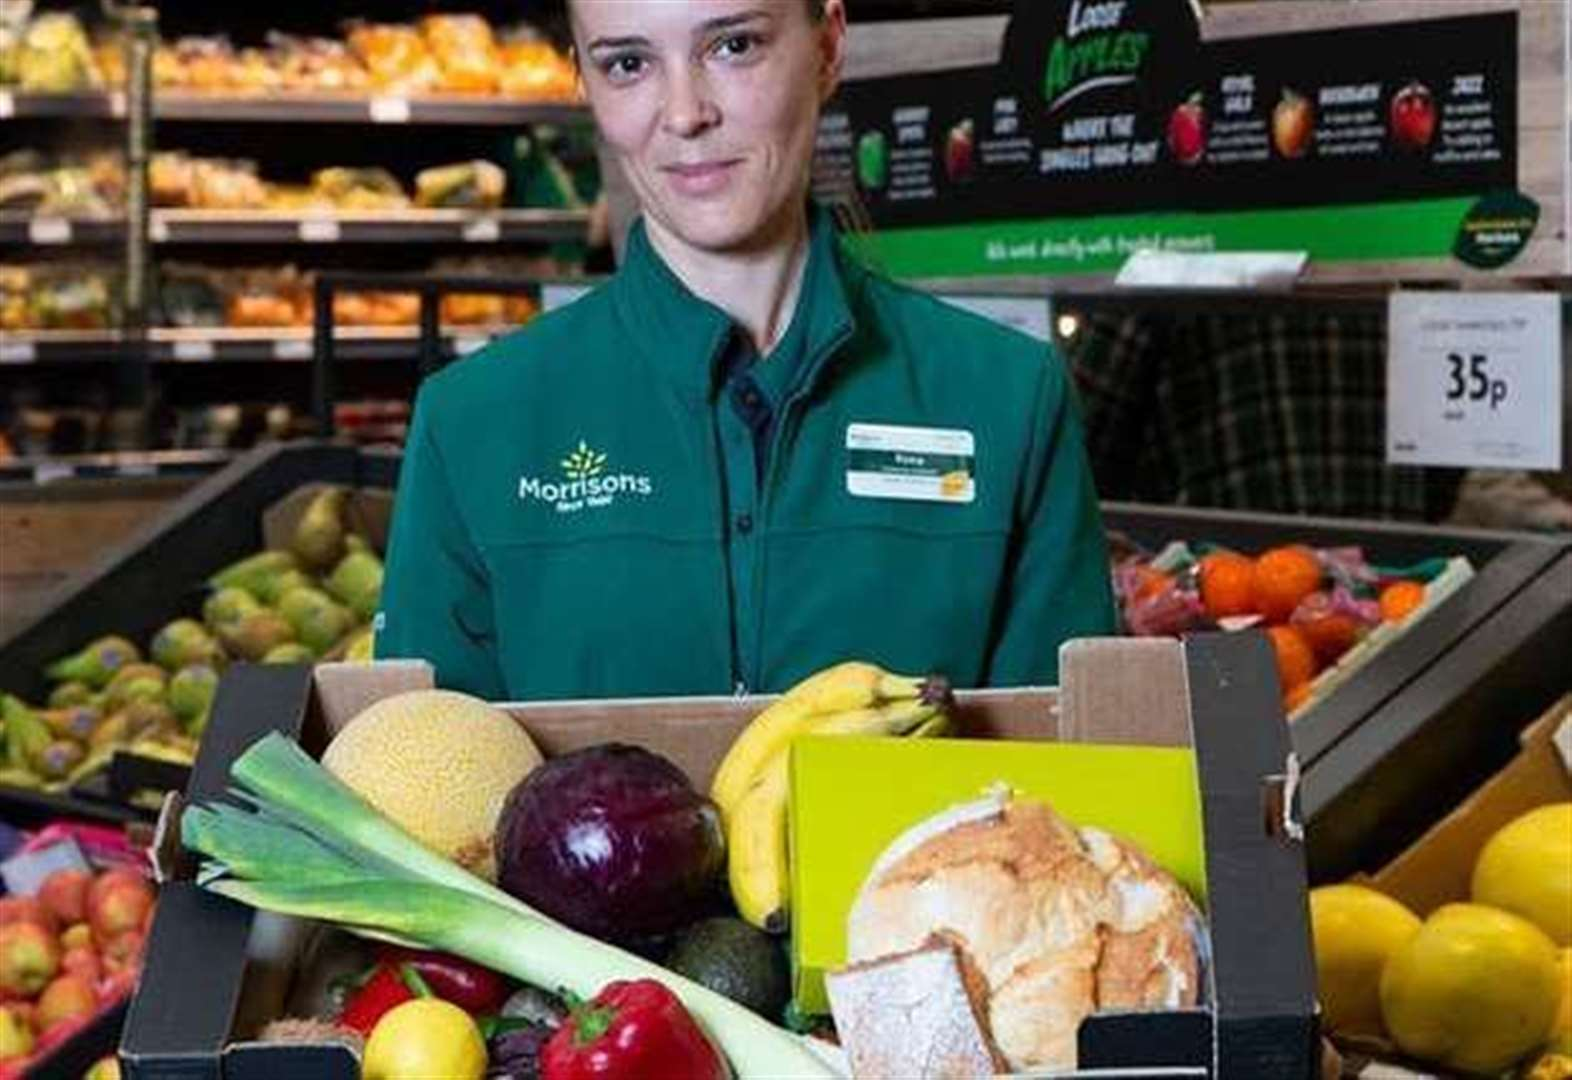 Morrisons becomes first supermarket to use 'Too Good to Go' food waste app